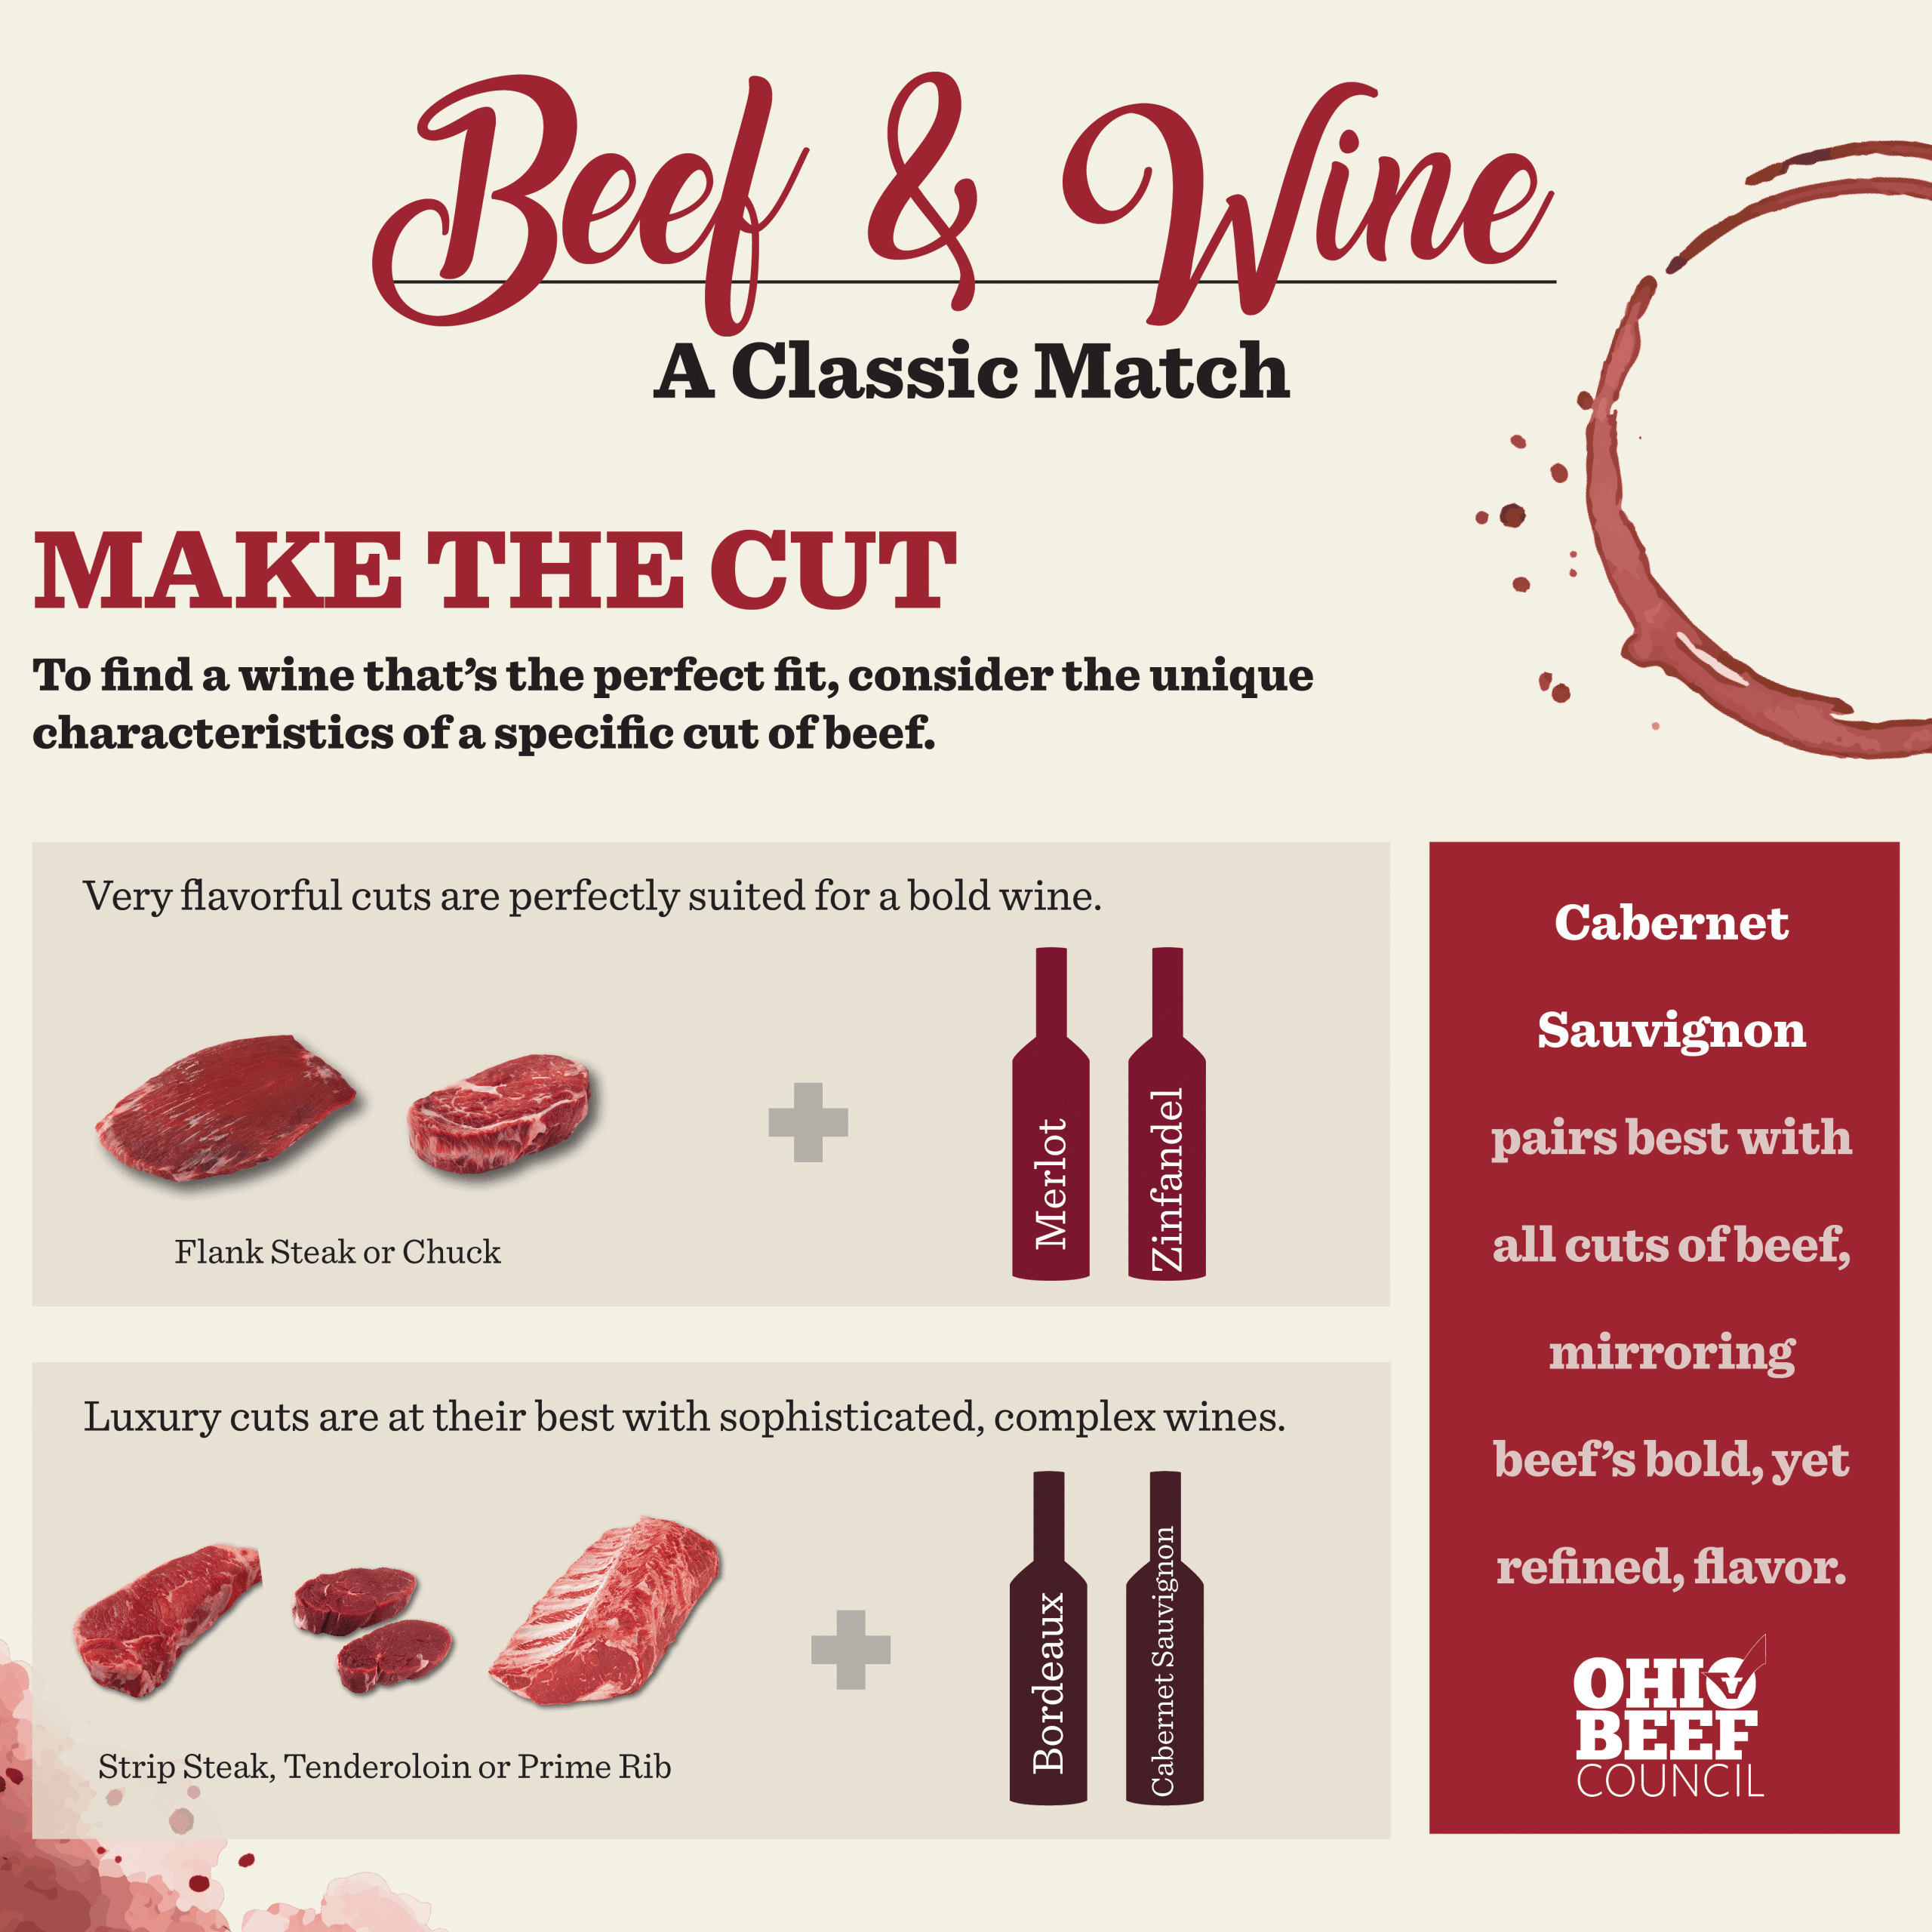 Wondering what wine to pair with your beef meal? This is a great guide!